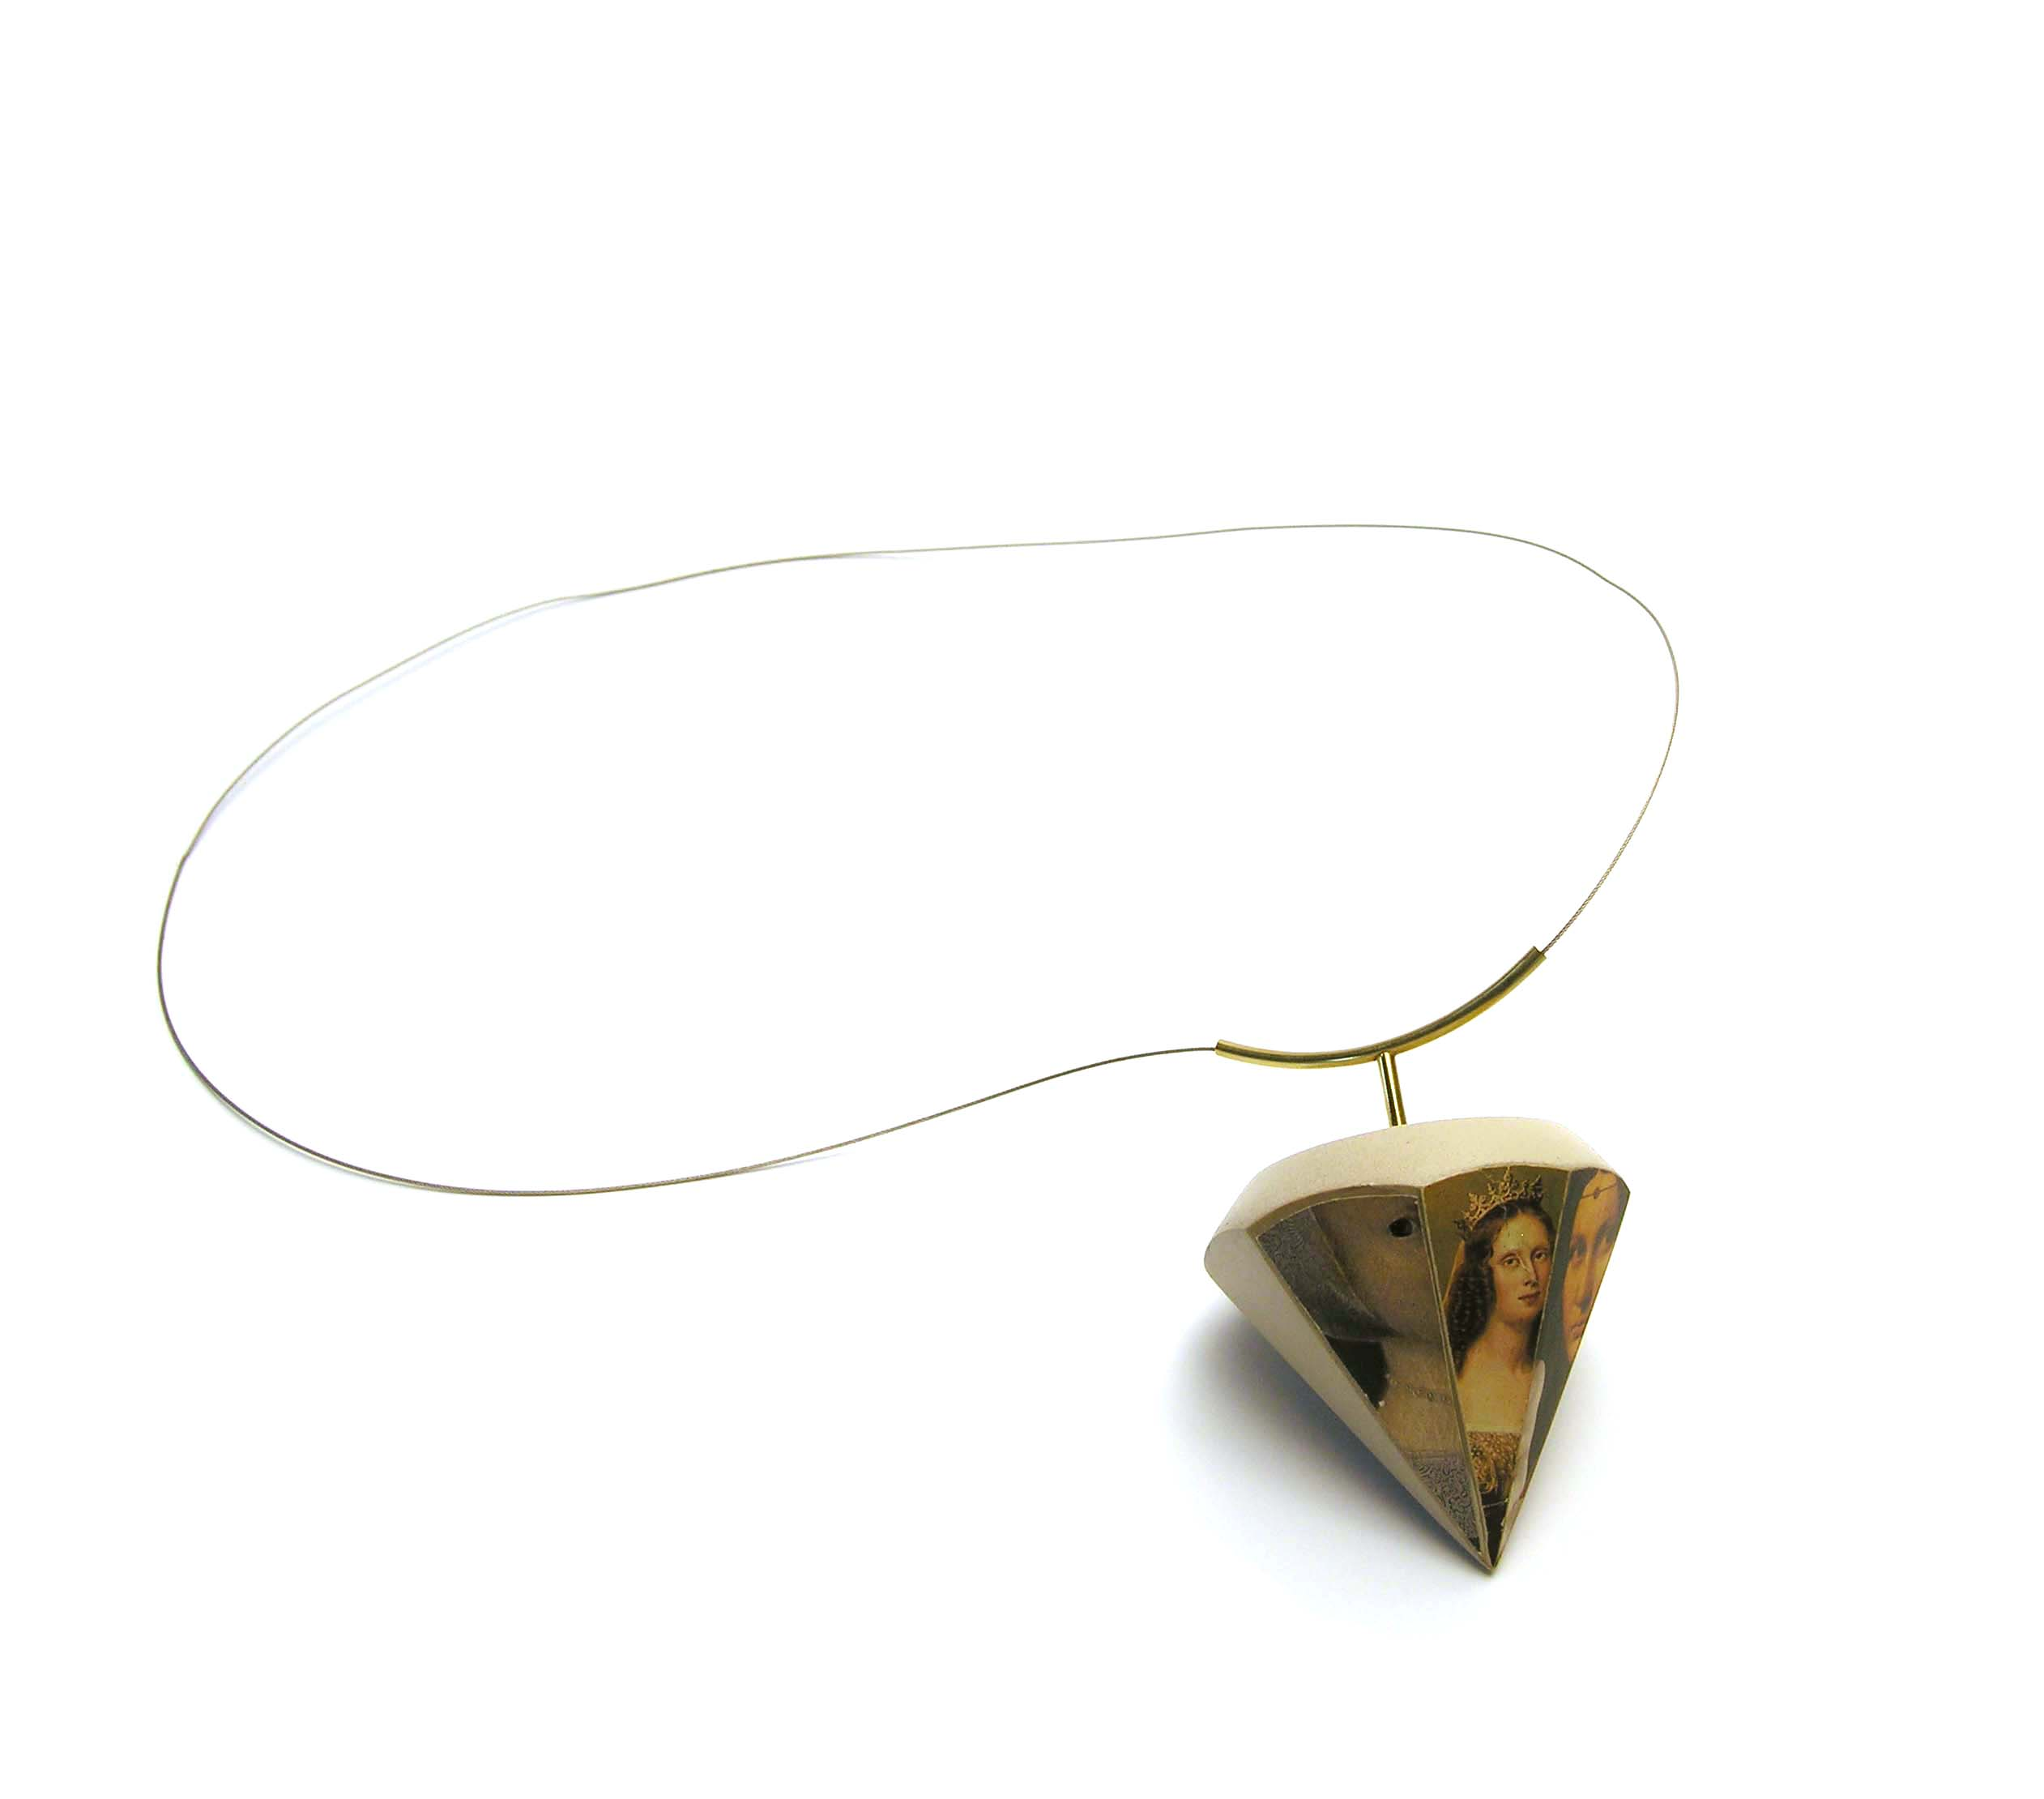 Inheritance Piece, 1990, necklace, photos, plastered foam, 18k gold, steel cable, 2.5 x 2.5 x 18 inches